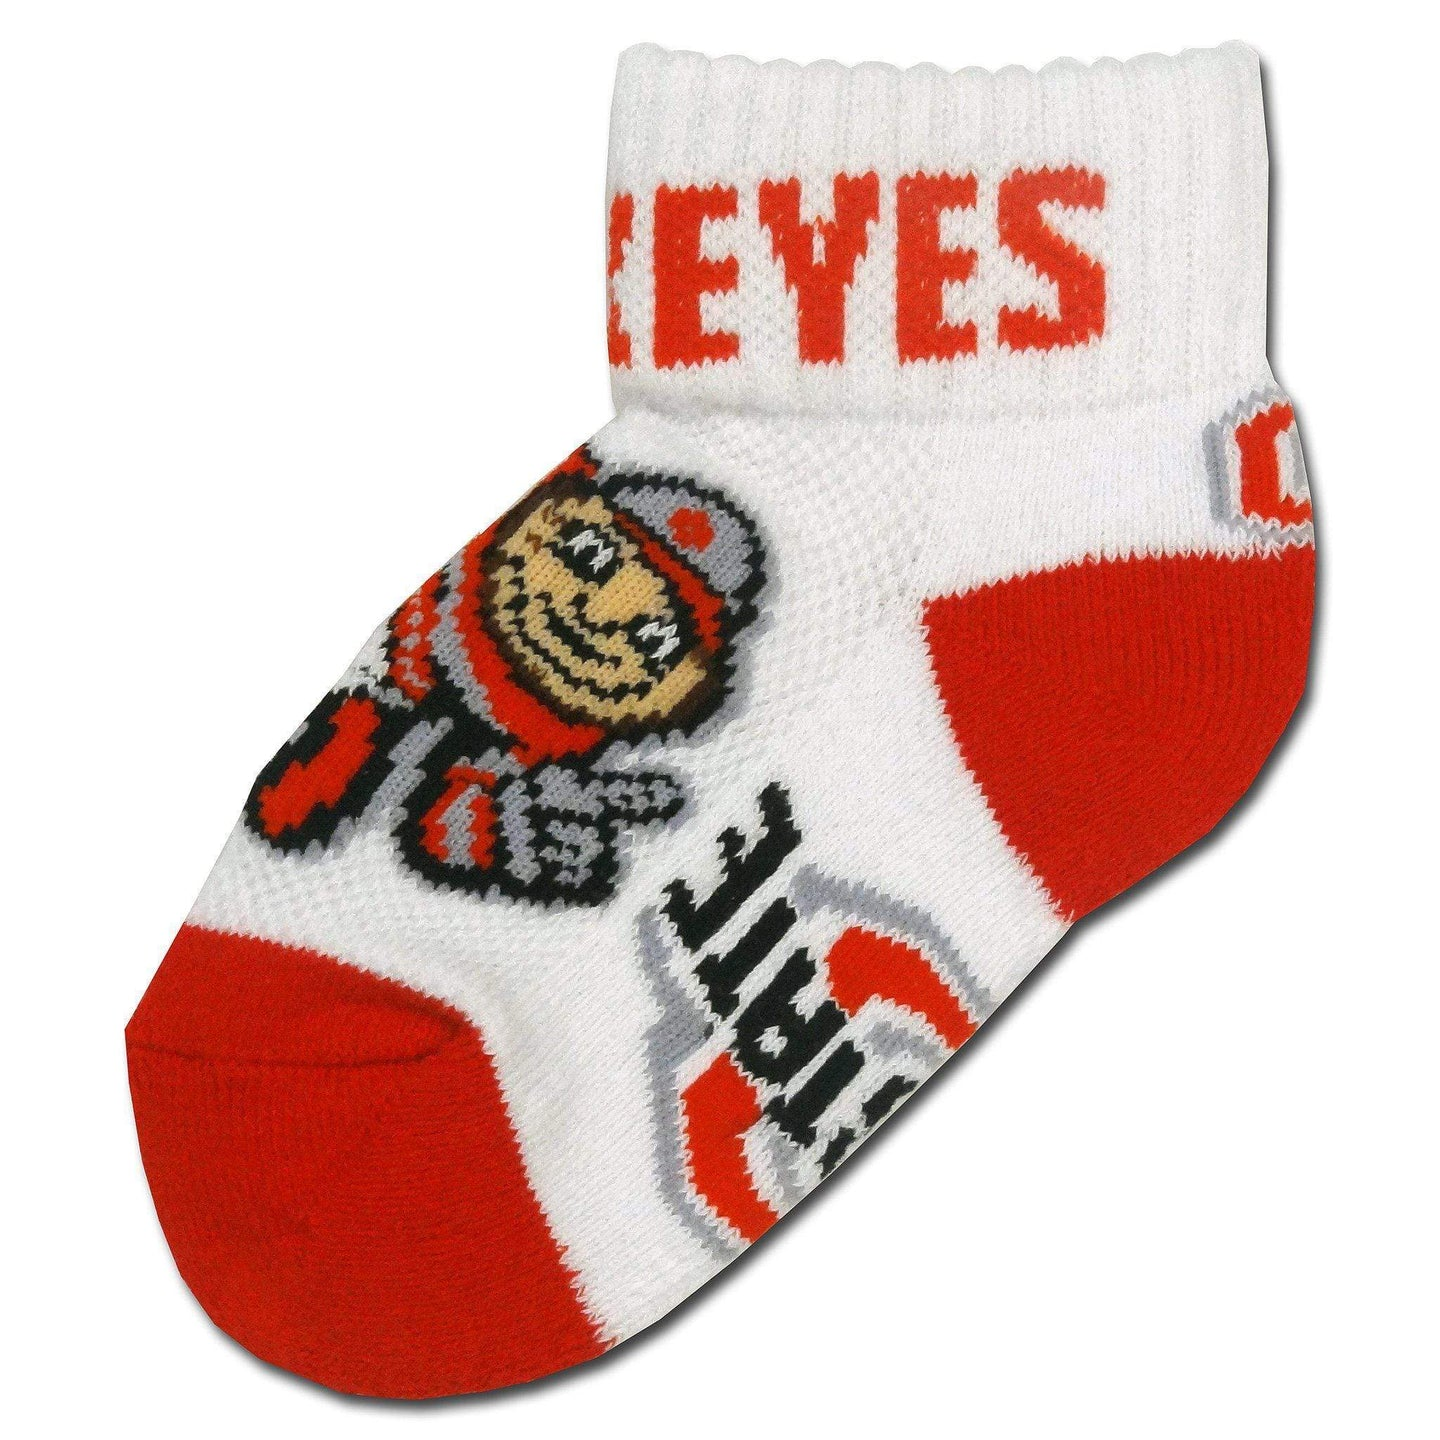 Ohio State Toddler Brutus Red Heel And Toe Socks - Conrads College Gifts